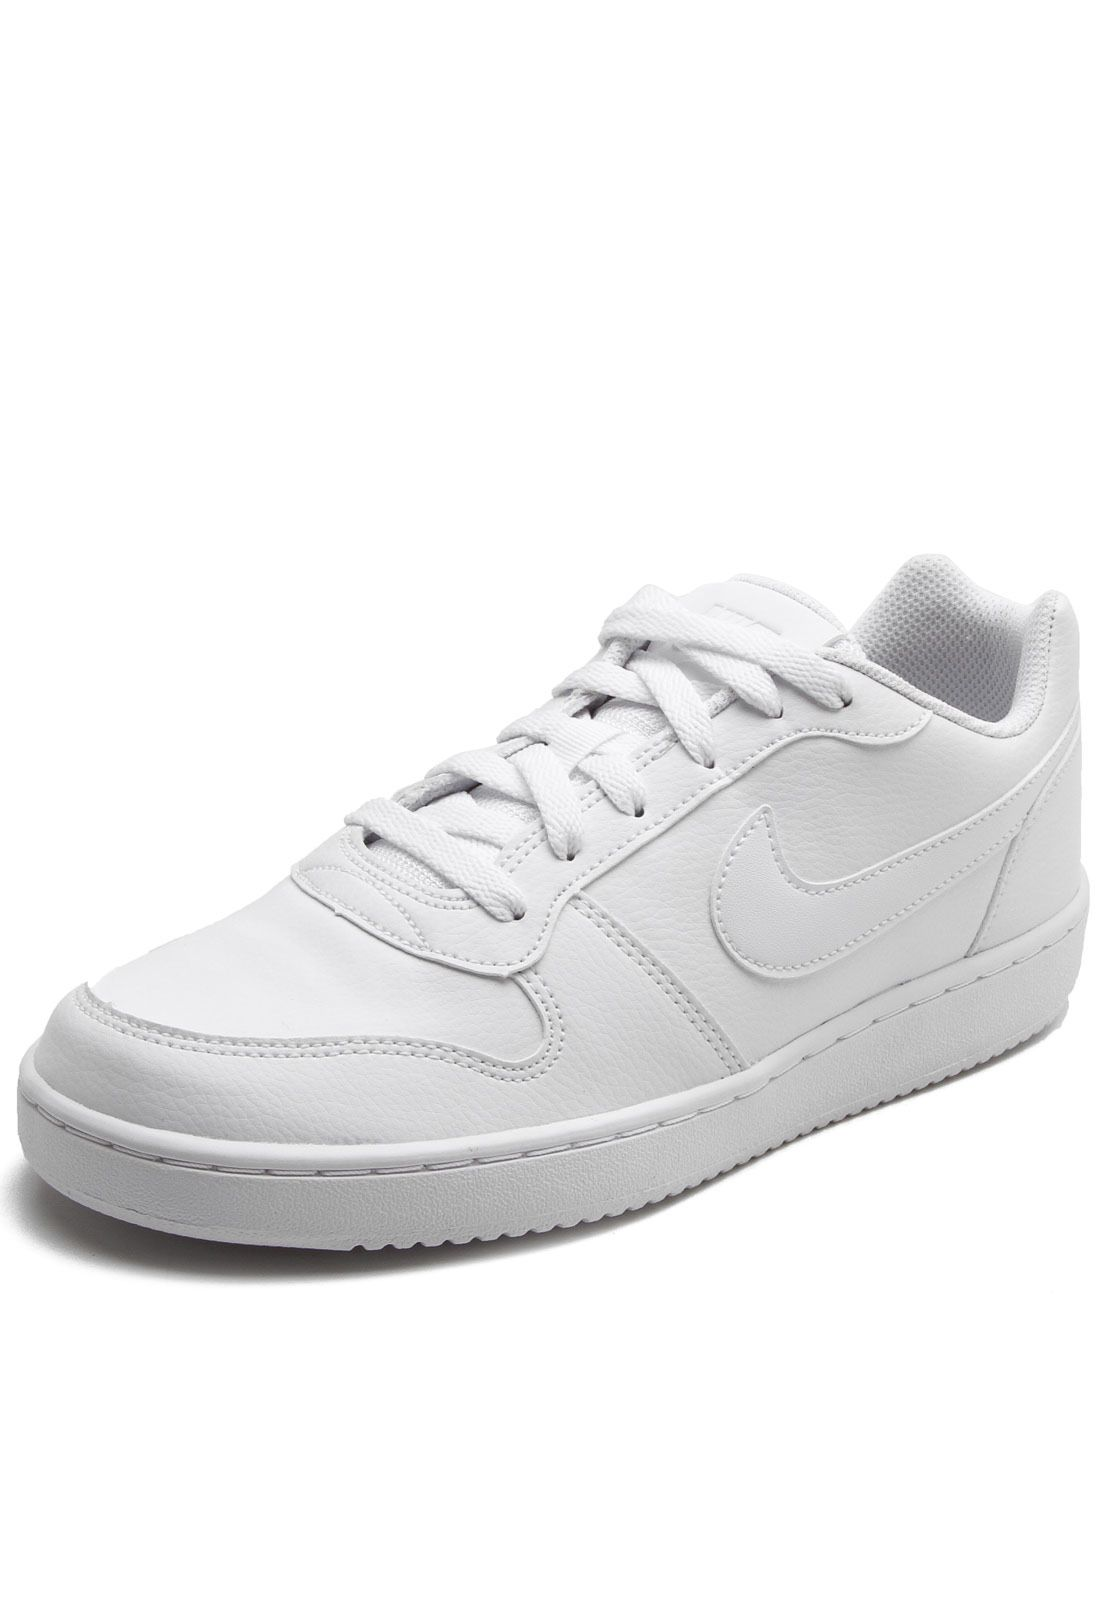 Nike Court Borough Low Casual 839985-100 White//White Sizes 4-7 New In Box GS